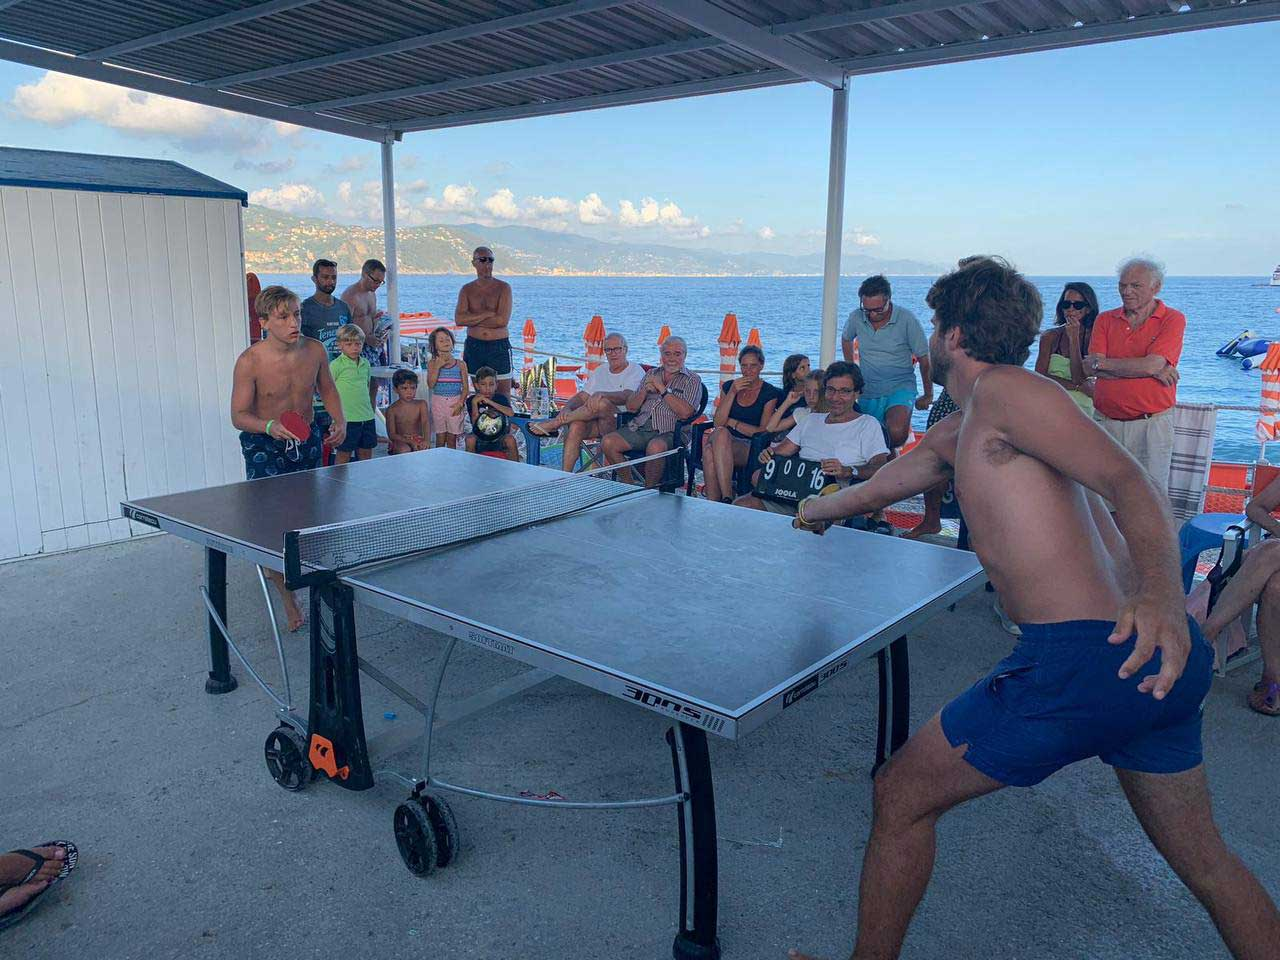 Torneo di Ping Pong a coppie